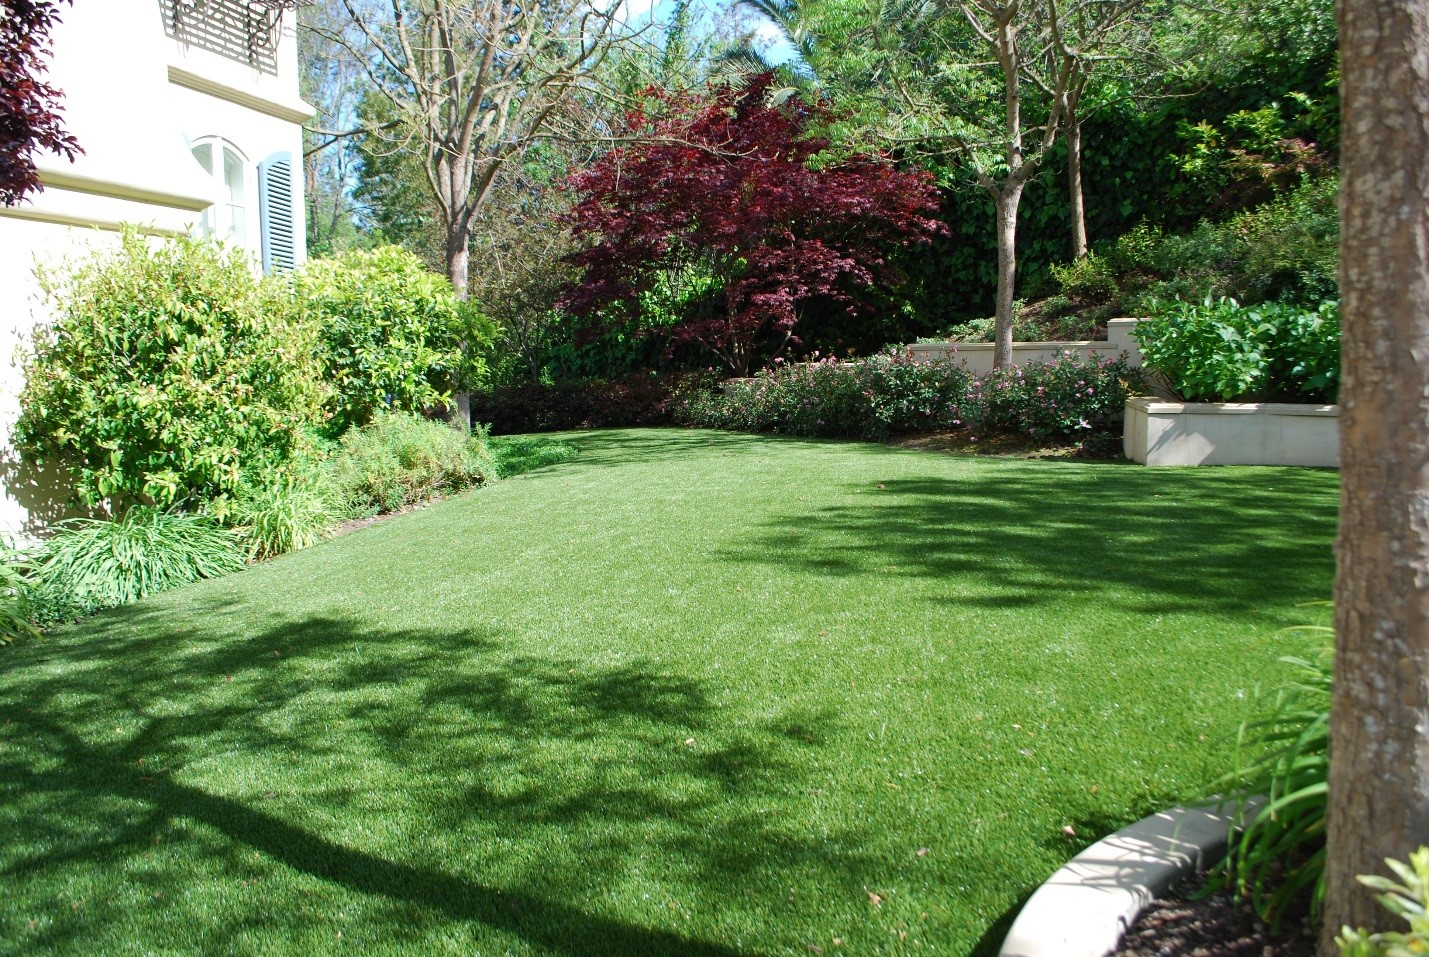 What's So Great About Artificial Turf? Low Maintenance & Eco-Friendly